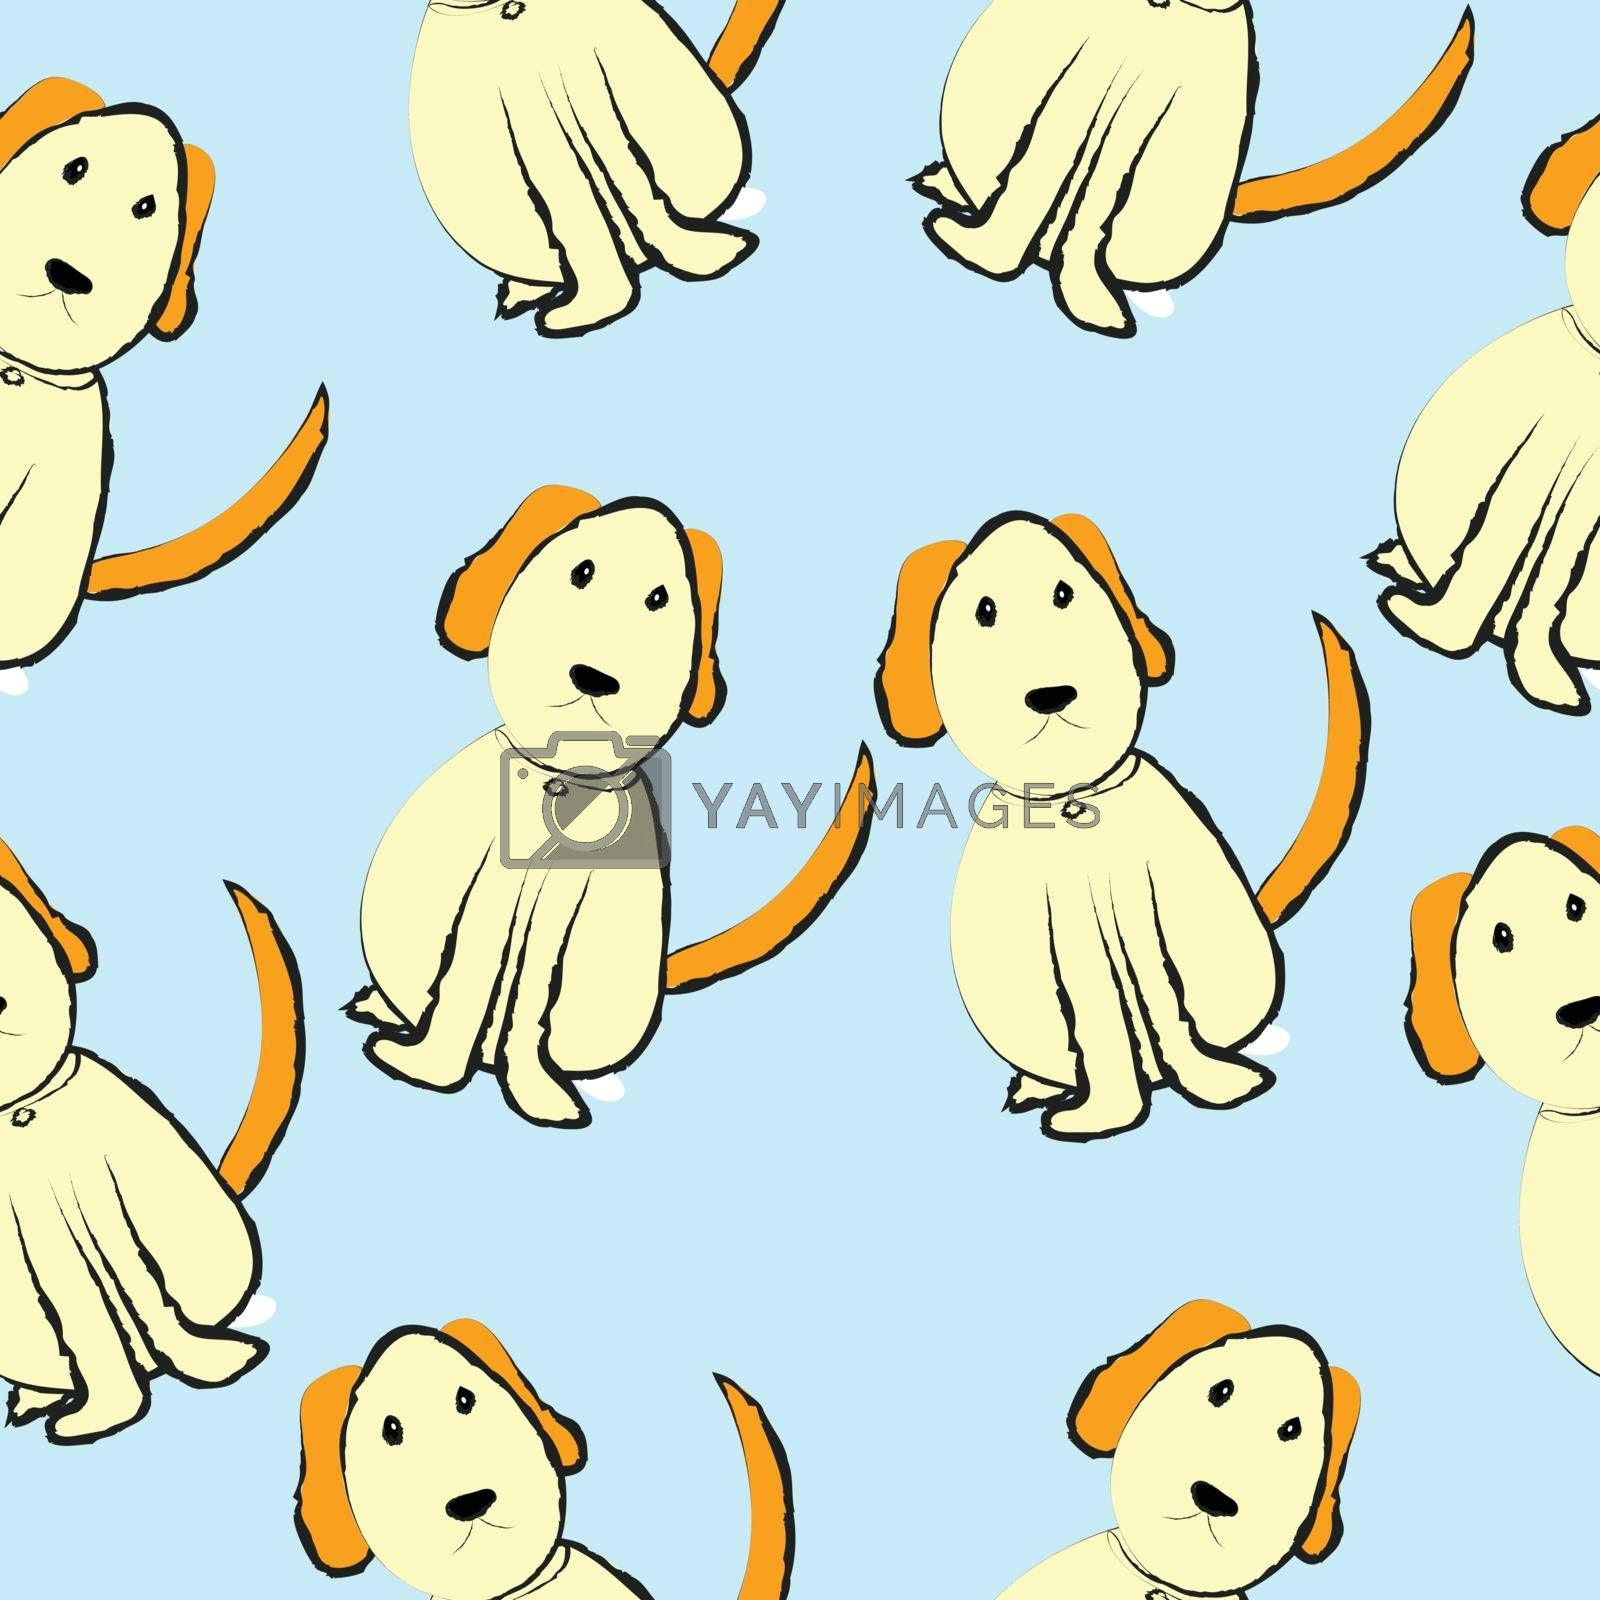 Dogs on blue background, seamless pattern image